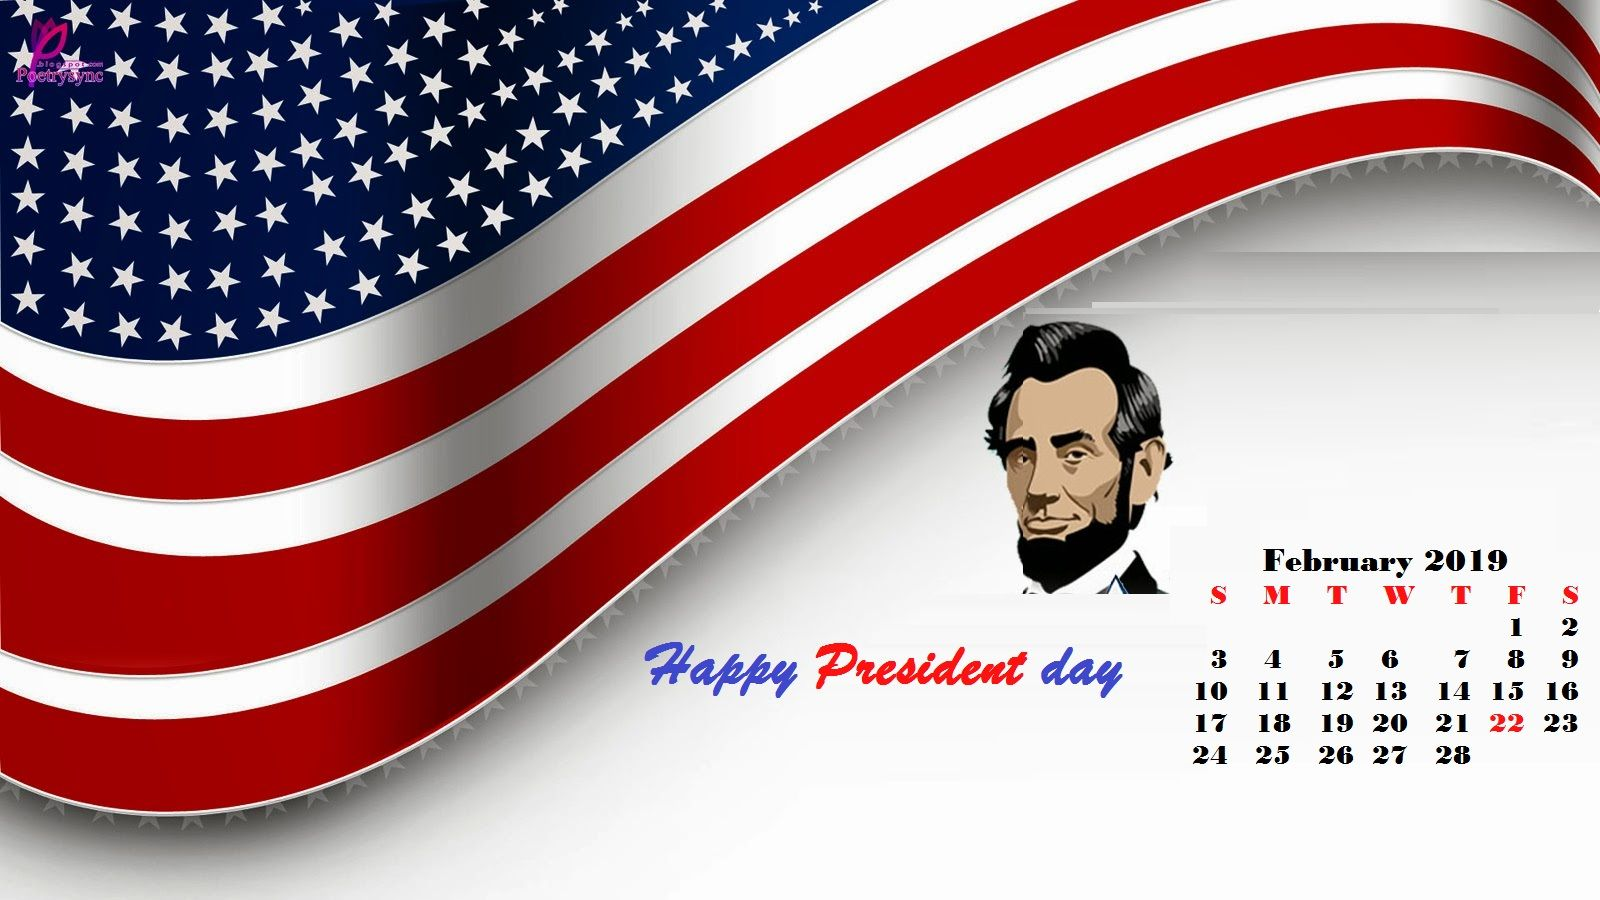 February 2019 Desktop Calendar Happy Presidents Day Desktop